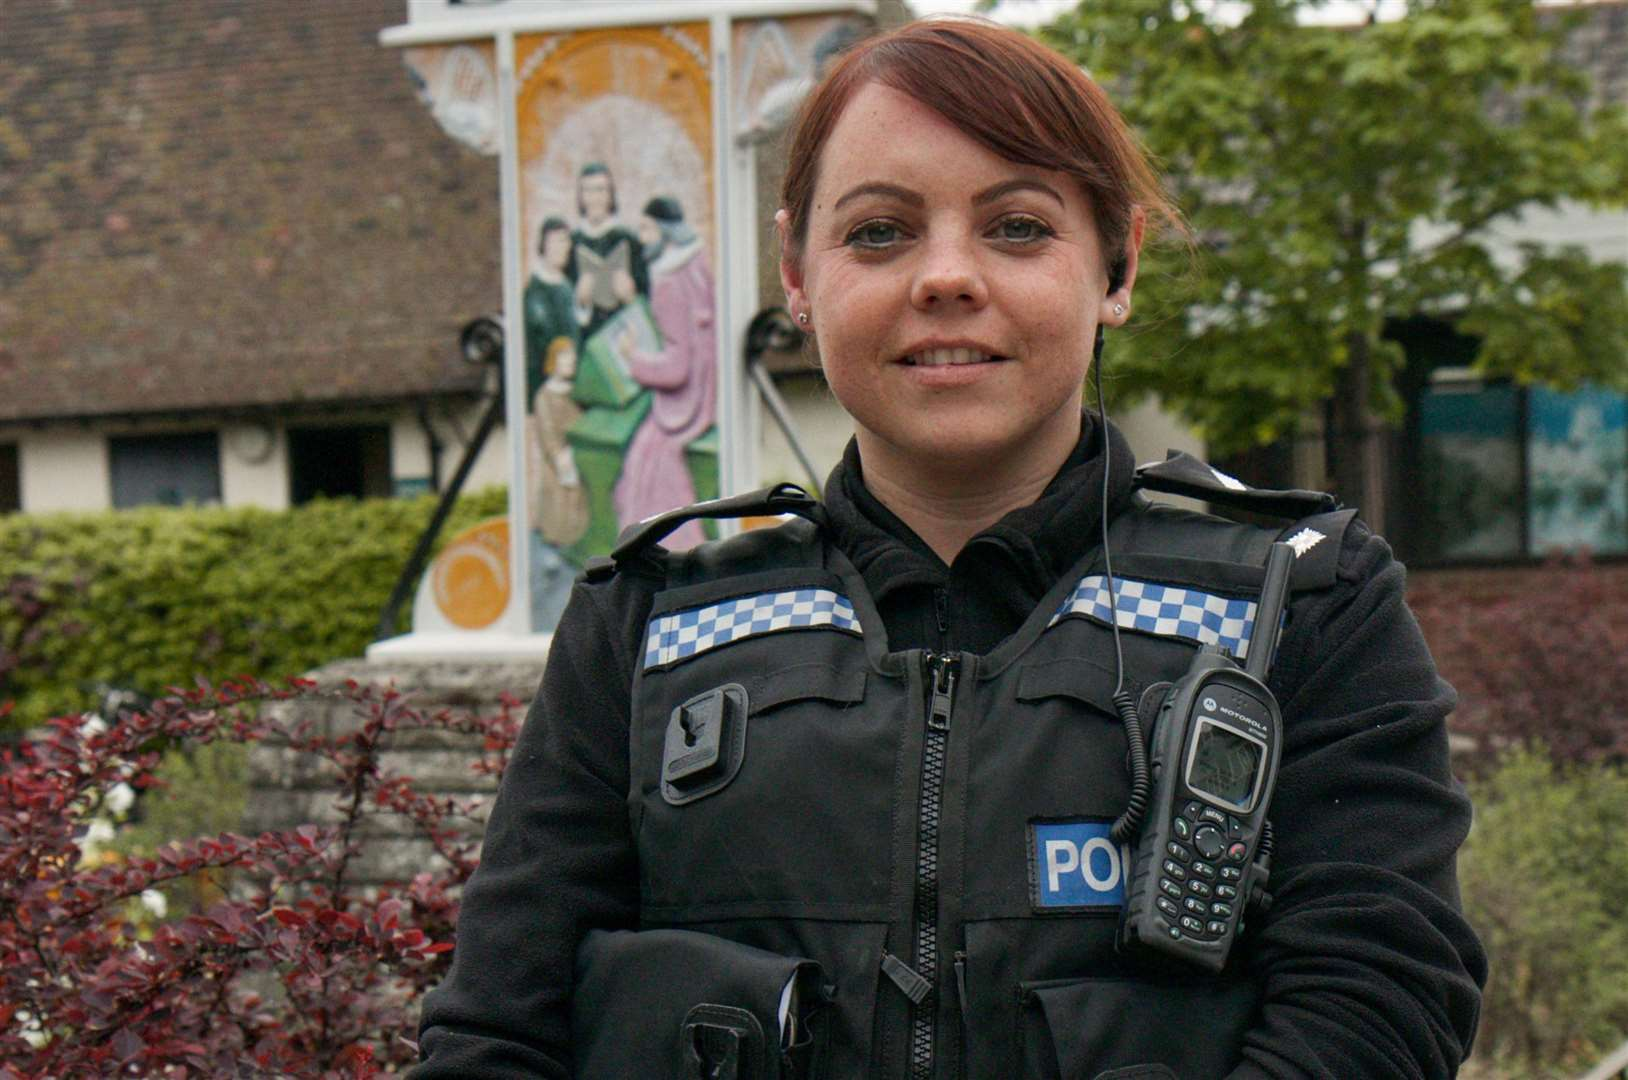 Insp Laura Symonds has come to Diss via the tactical firearms and family liasion services, among others. Picture by Chris Morris.